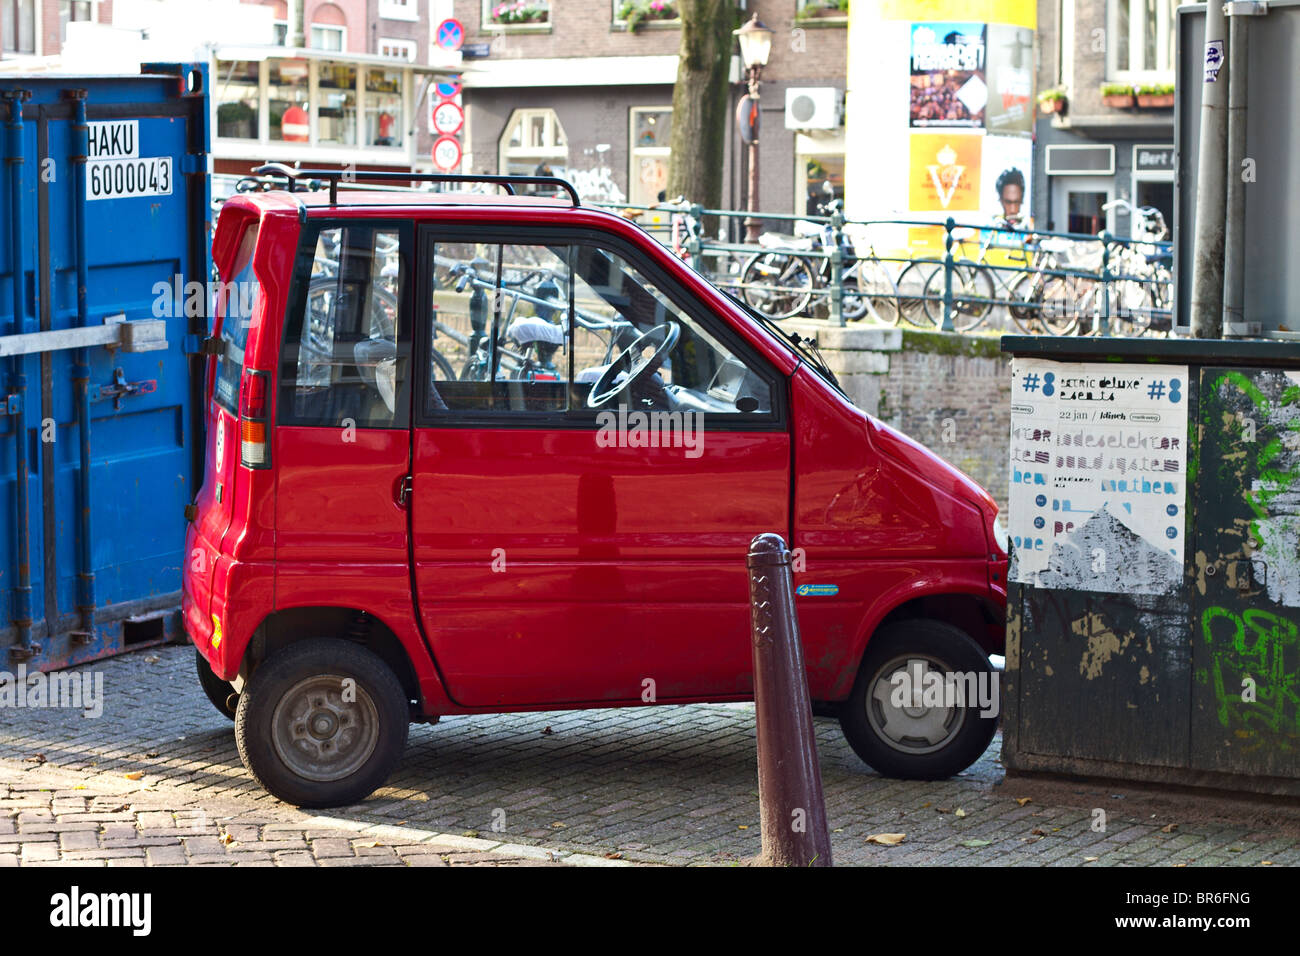 Red Canta Lx Car Parked In Small Parking Space Amsterdam Holland